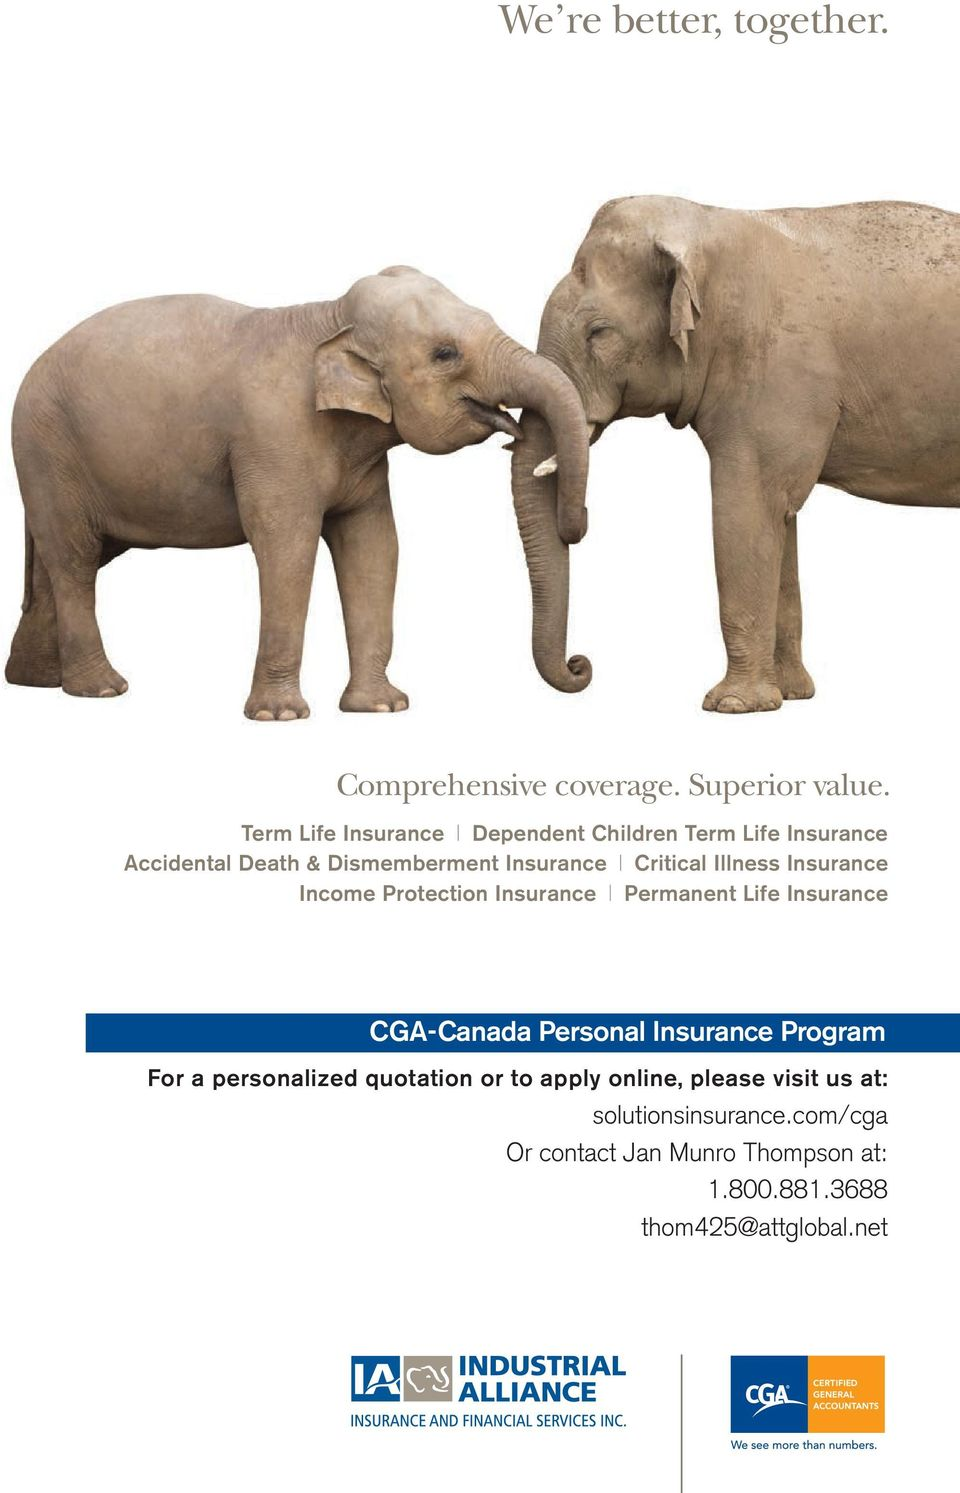 Illness Insurance Income Protection Insurance Permanent Life Insurance CGA-Canada Personal Insurance Program